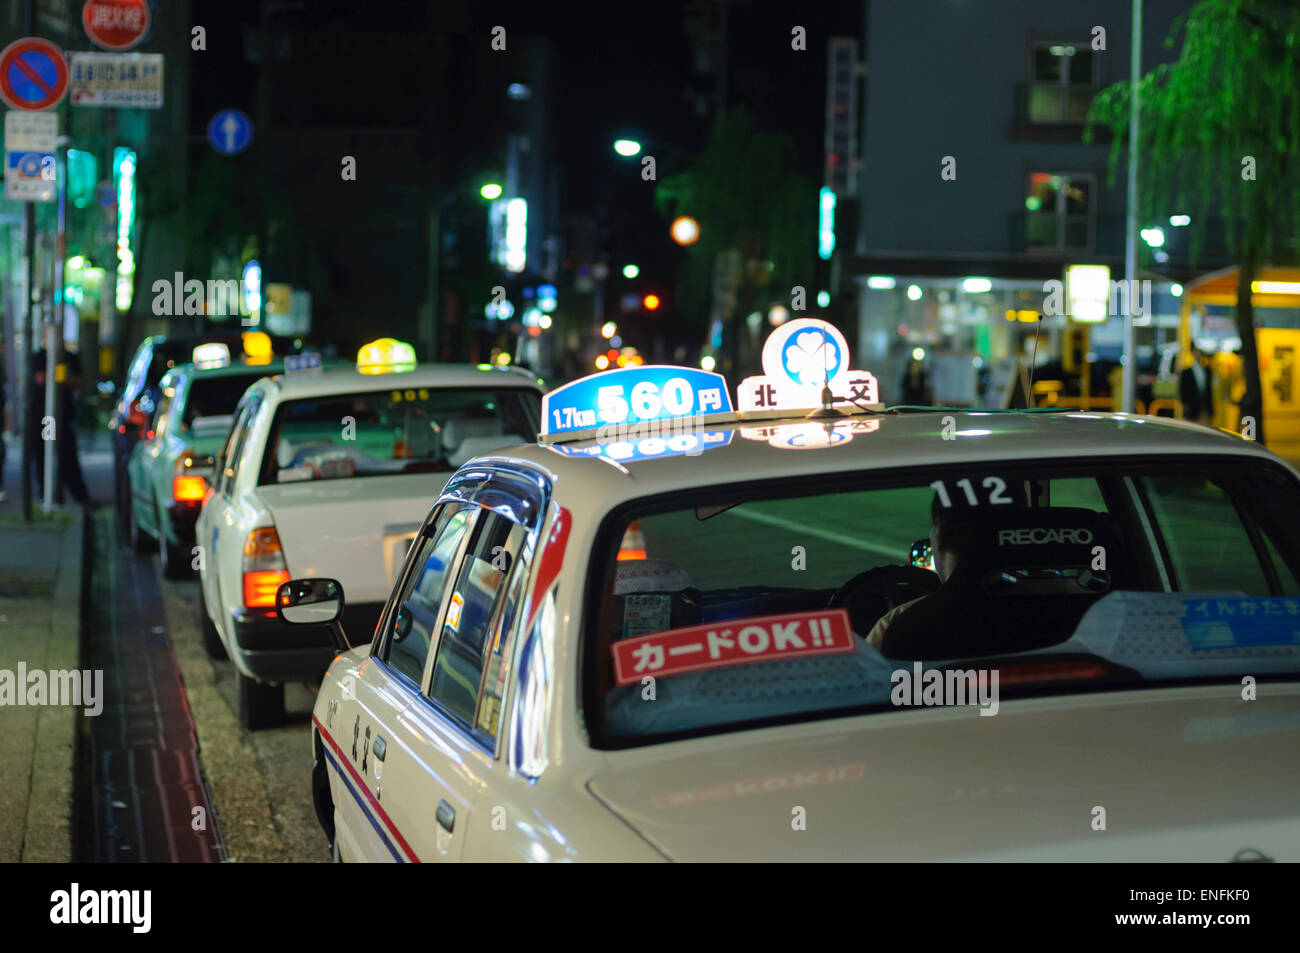 Atmosphere of the night in Japan: taxis wait for customers in a Japanese city entertainment district. Taxi rank, - Stock Image